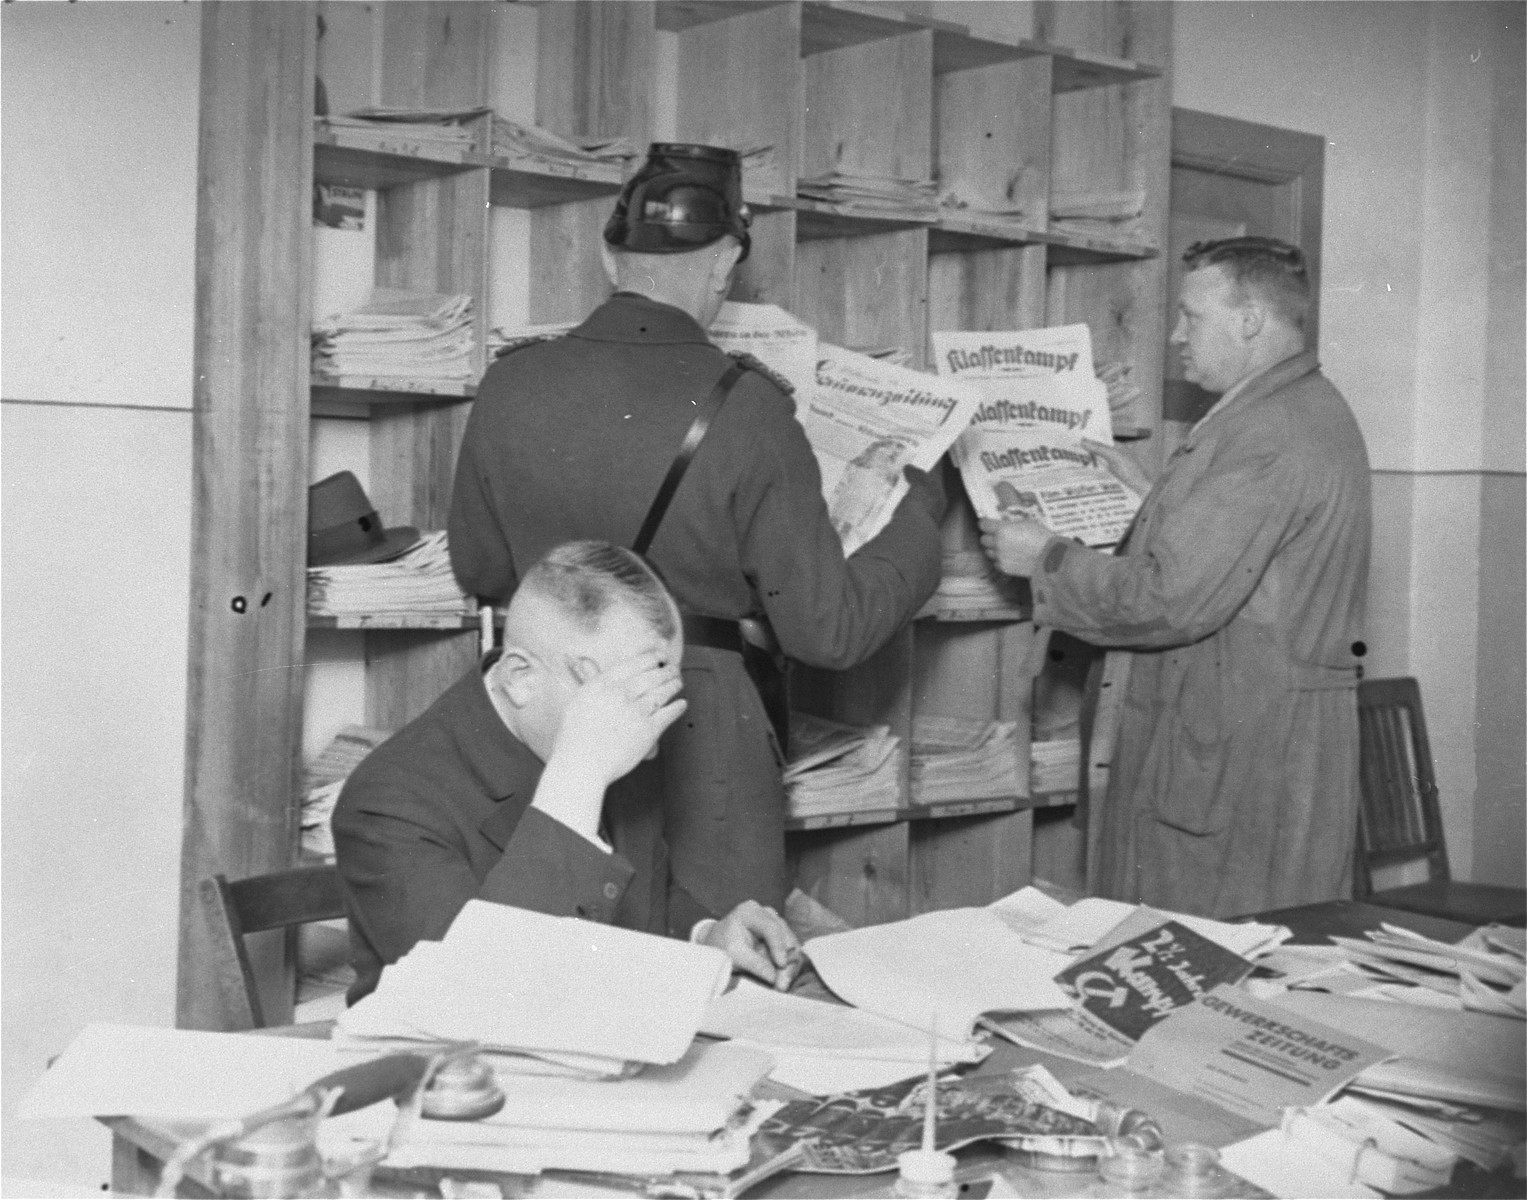 Gestapo officers and a member of the Schutzpolizei look through newspapers and publications during the closing of the Karl-Liebknecht House (KPD headquarters) on the Buelowplatz in Berlin.    The closing of Communist Party offices was declared necessary for the protection of the state in the Enabling Act, passed by the Reichstag soon after the fire of 28 February 1933.